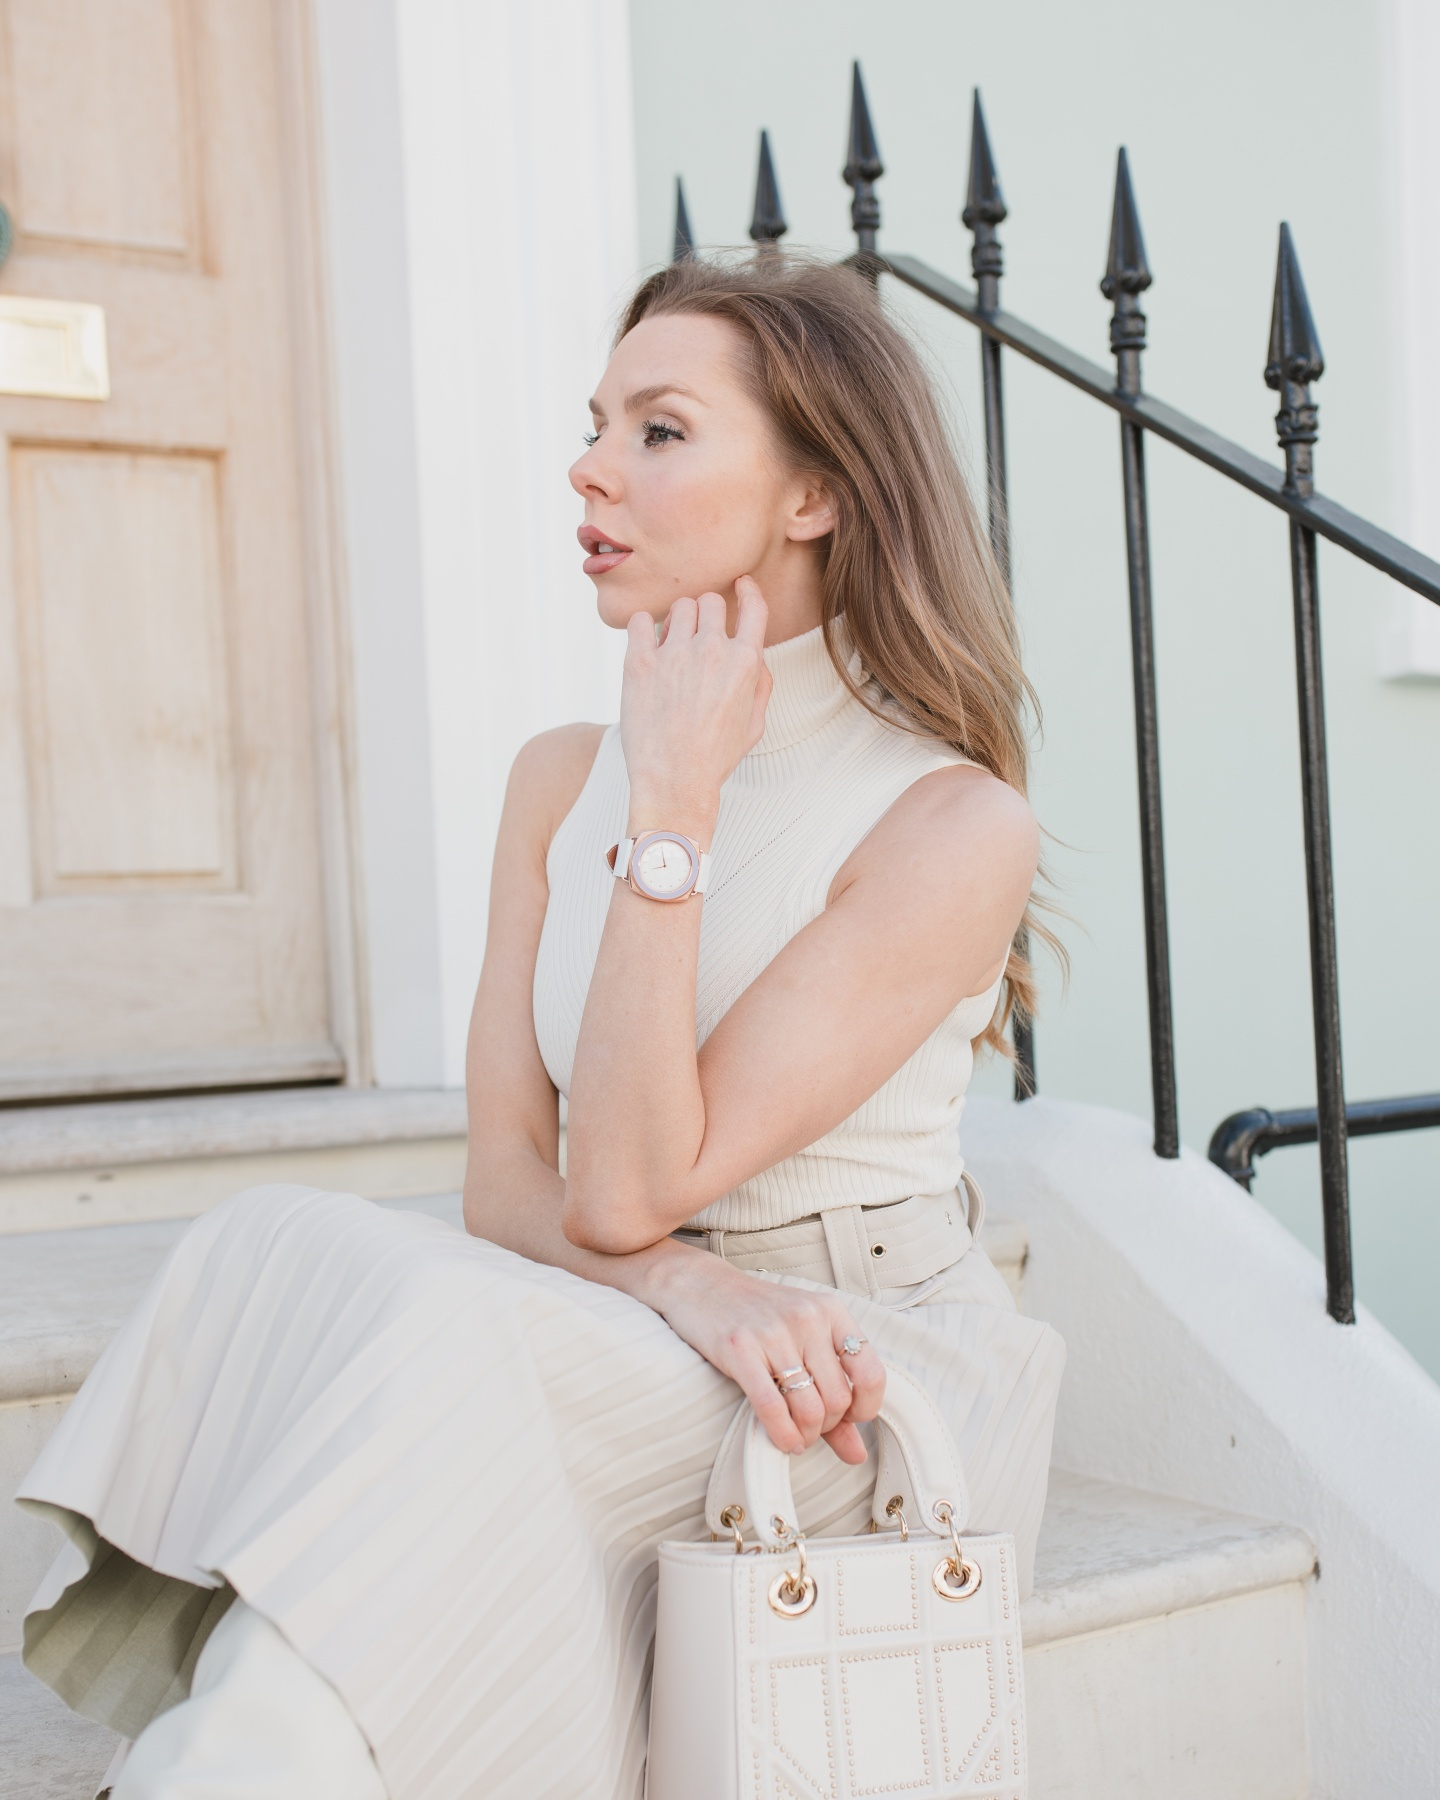 london fashion blogger, penarosa watch, river island, autumn fashion, uk blogger